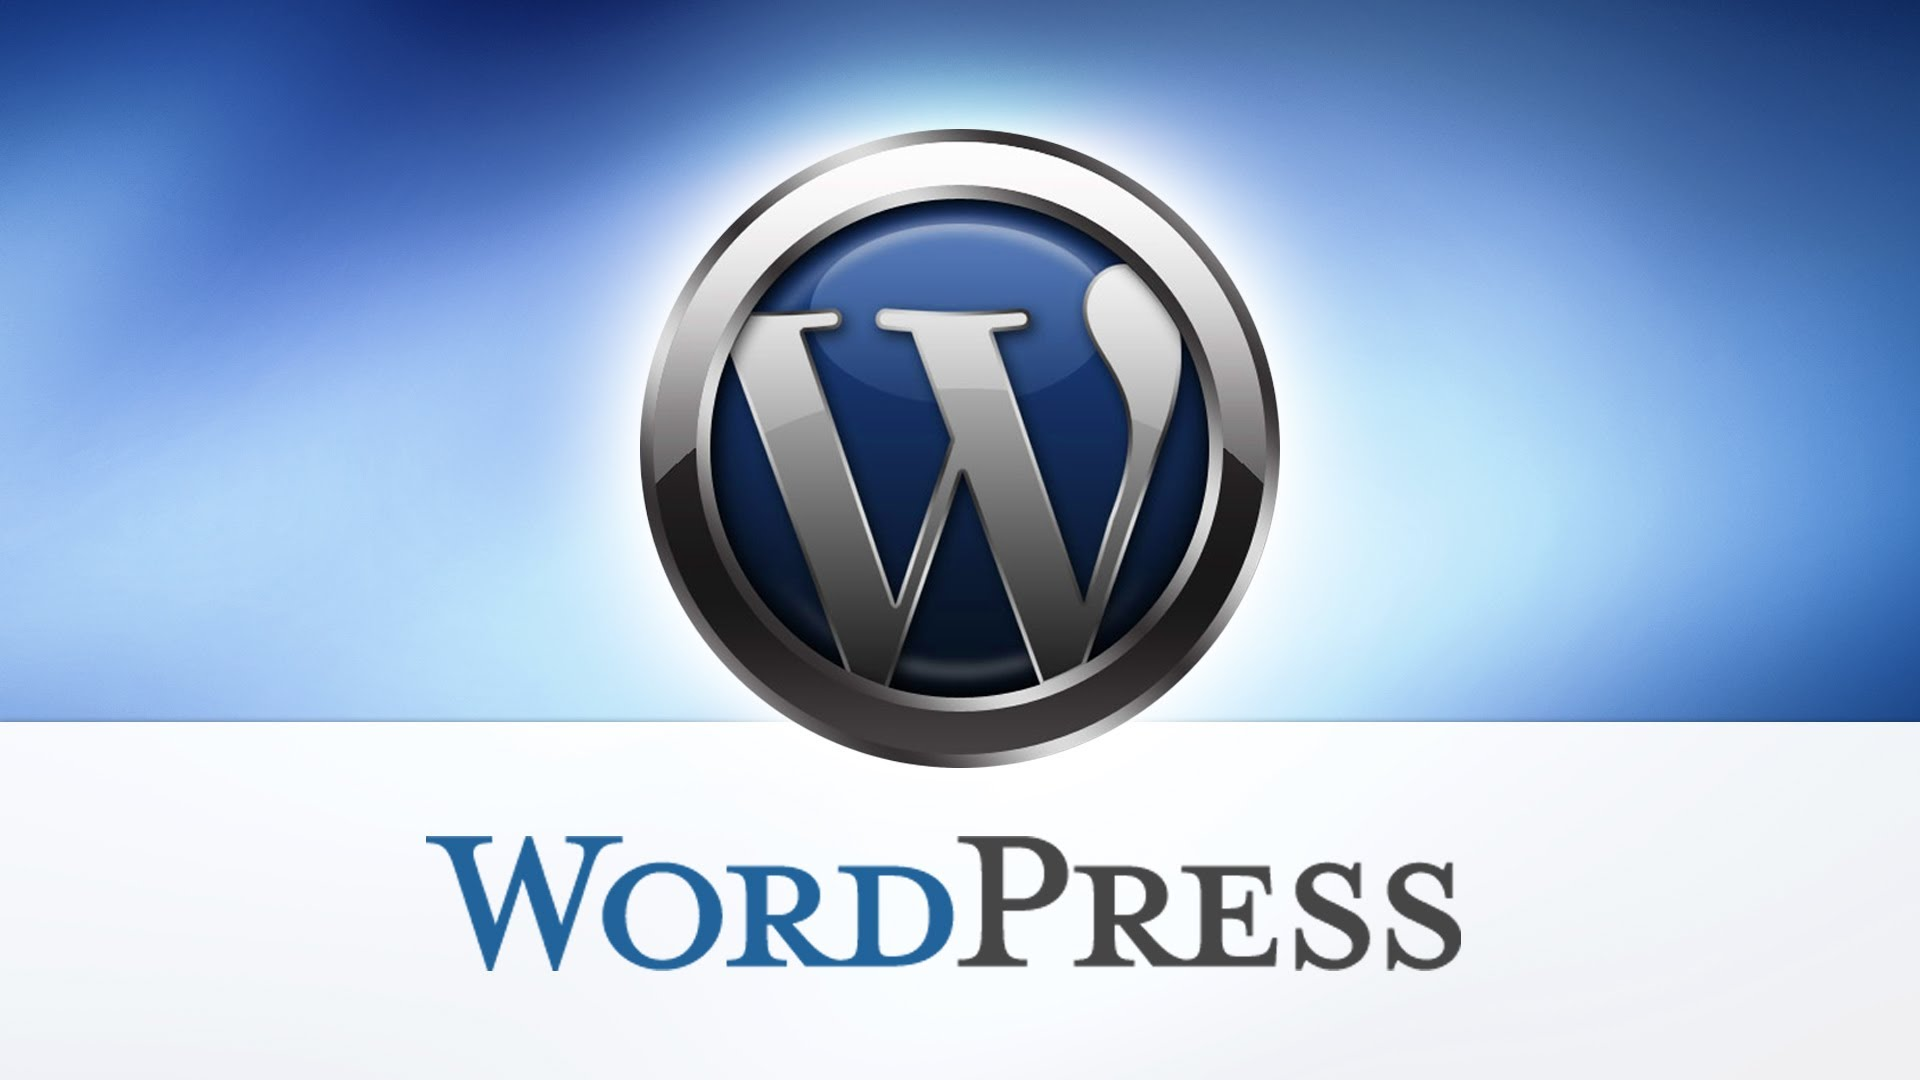 Install WordPress and Plugins